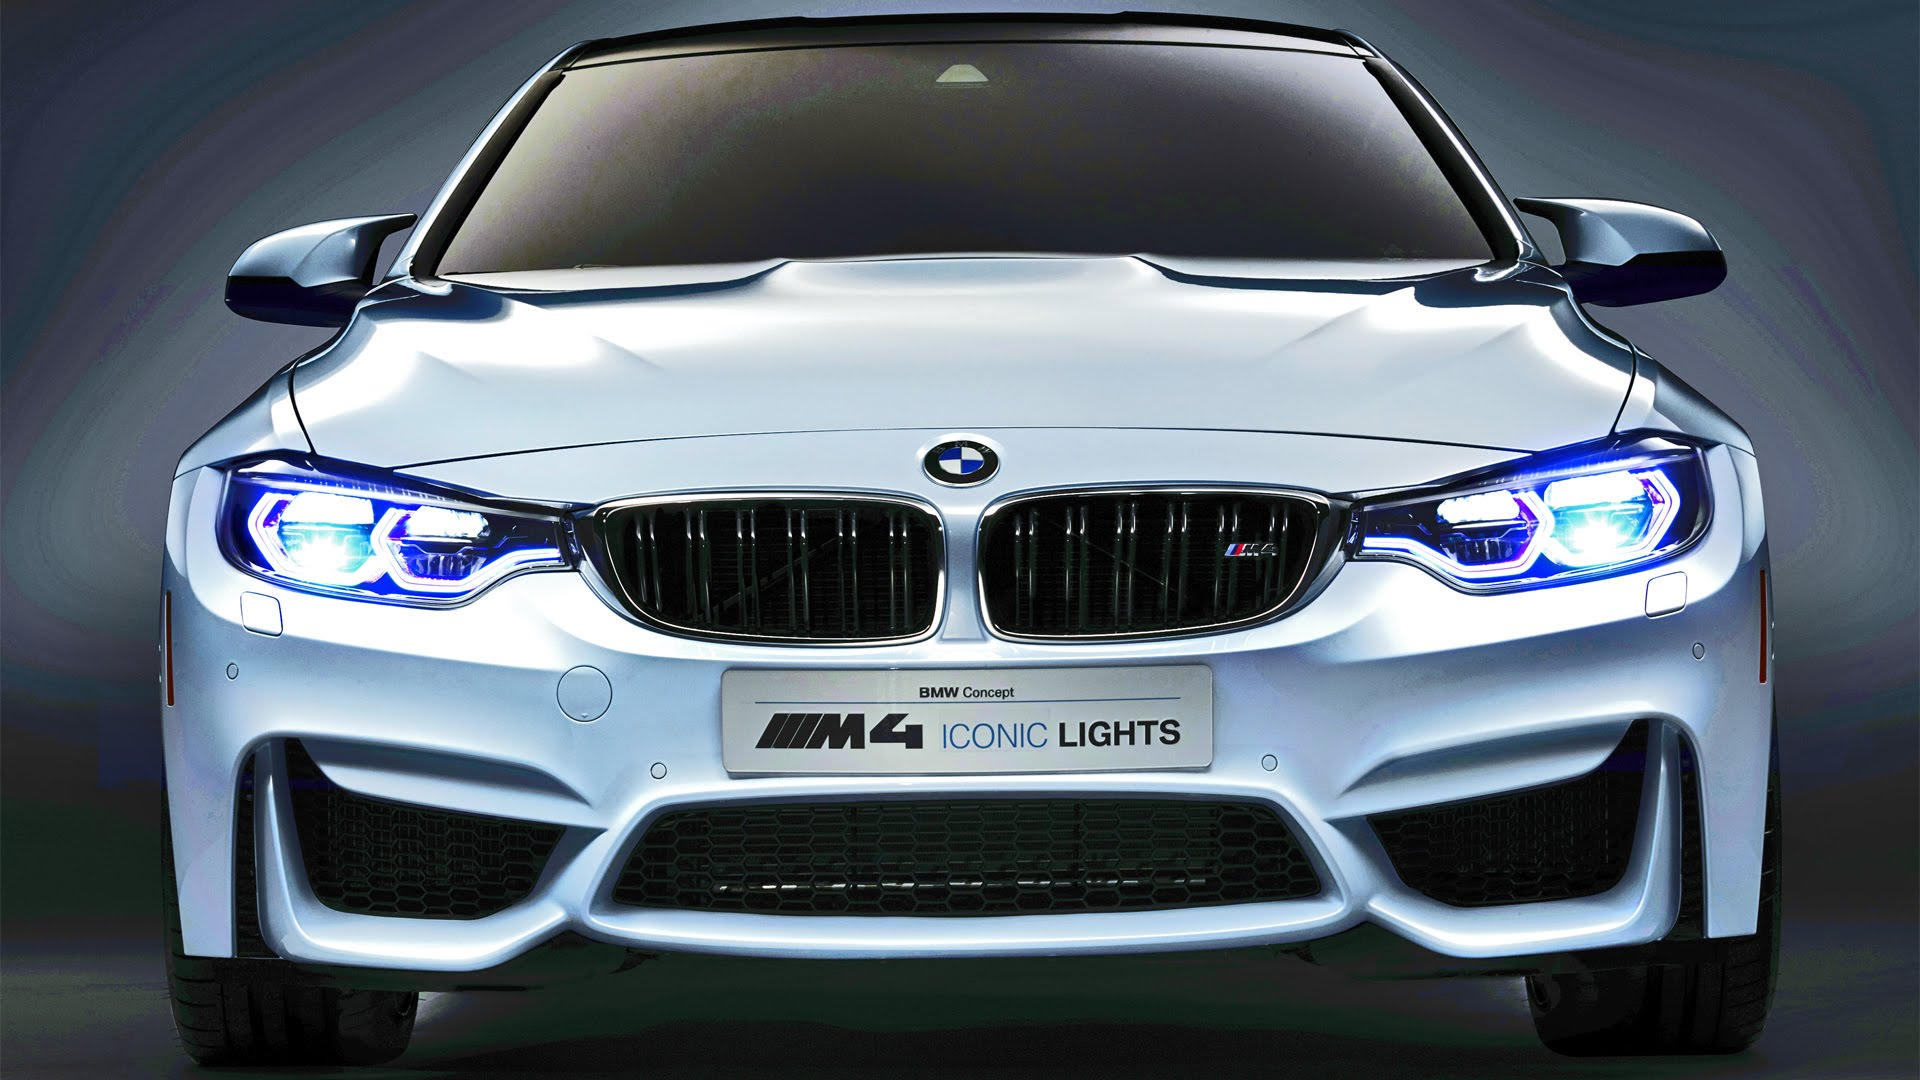 2018 BMW M4 Iconic Lights Concept photo - 3